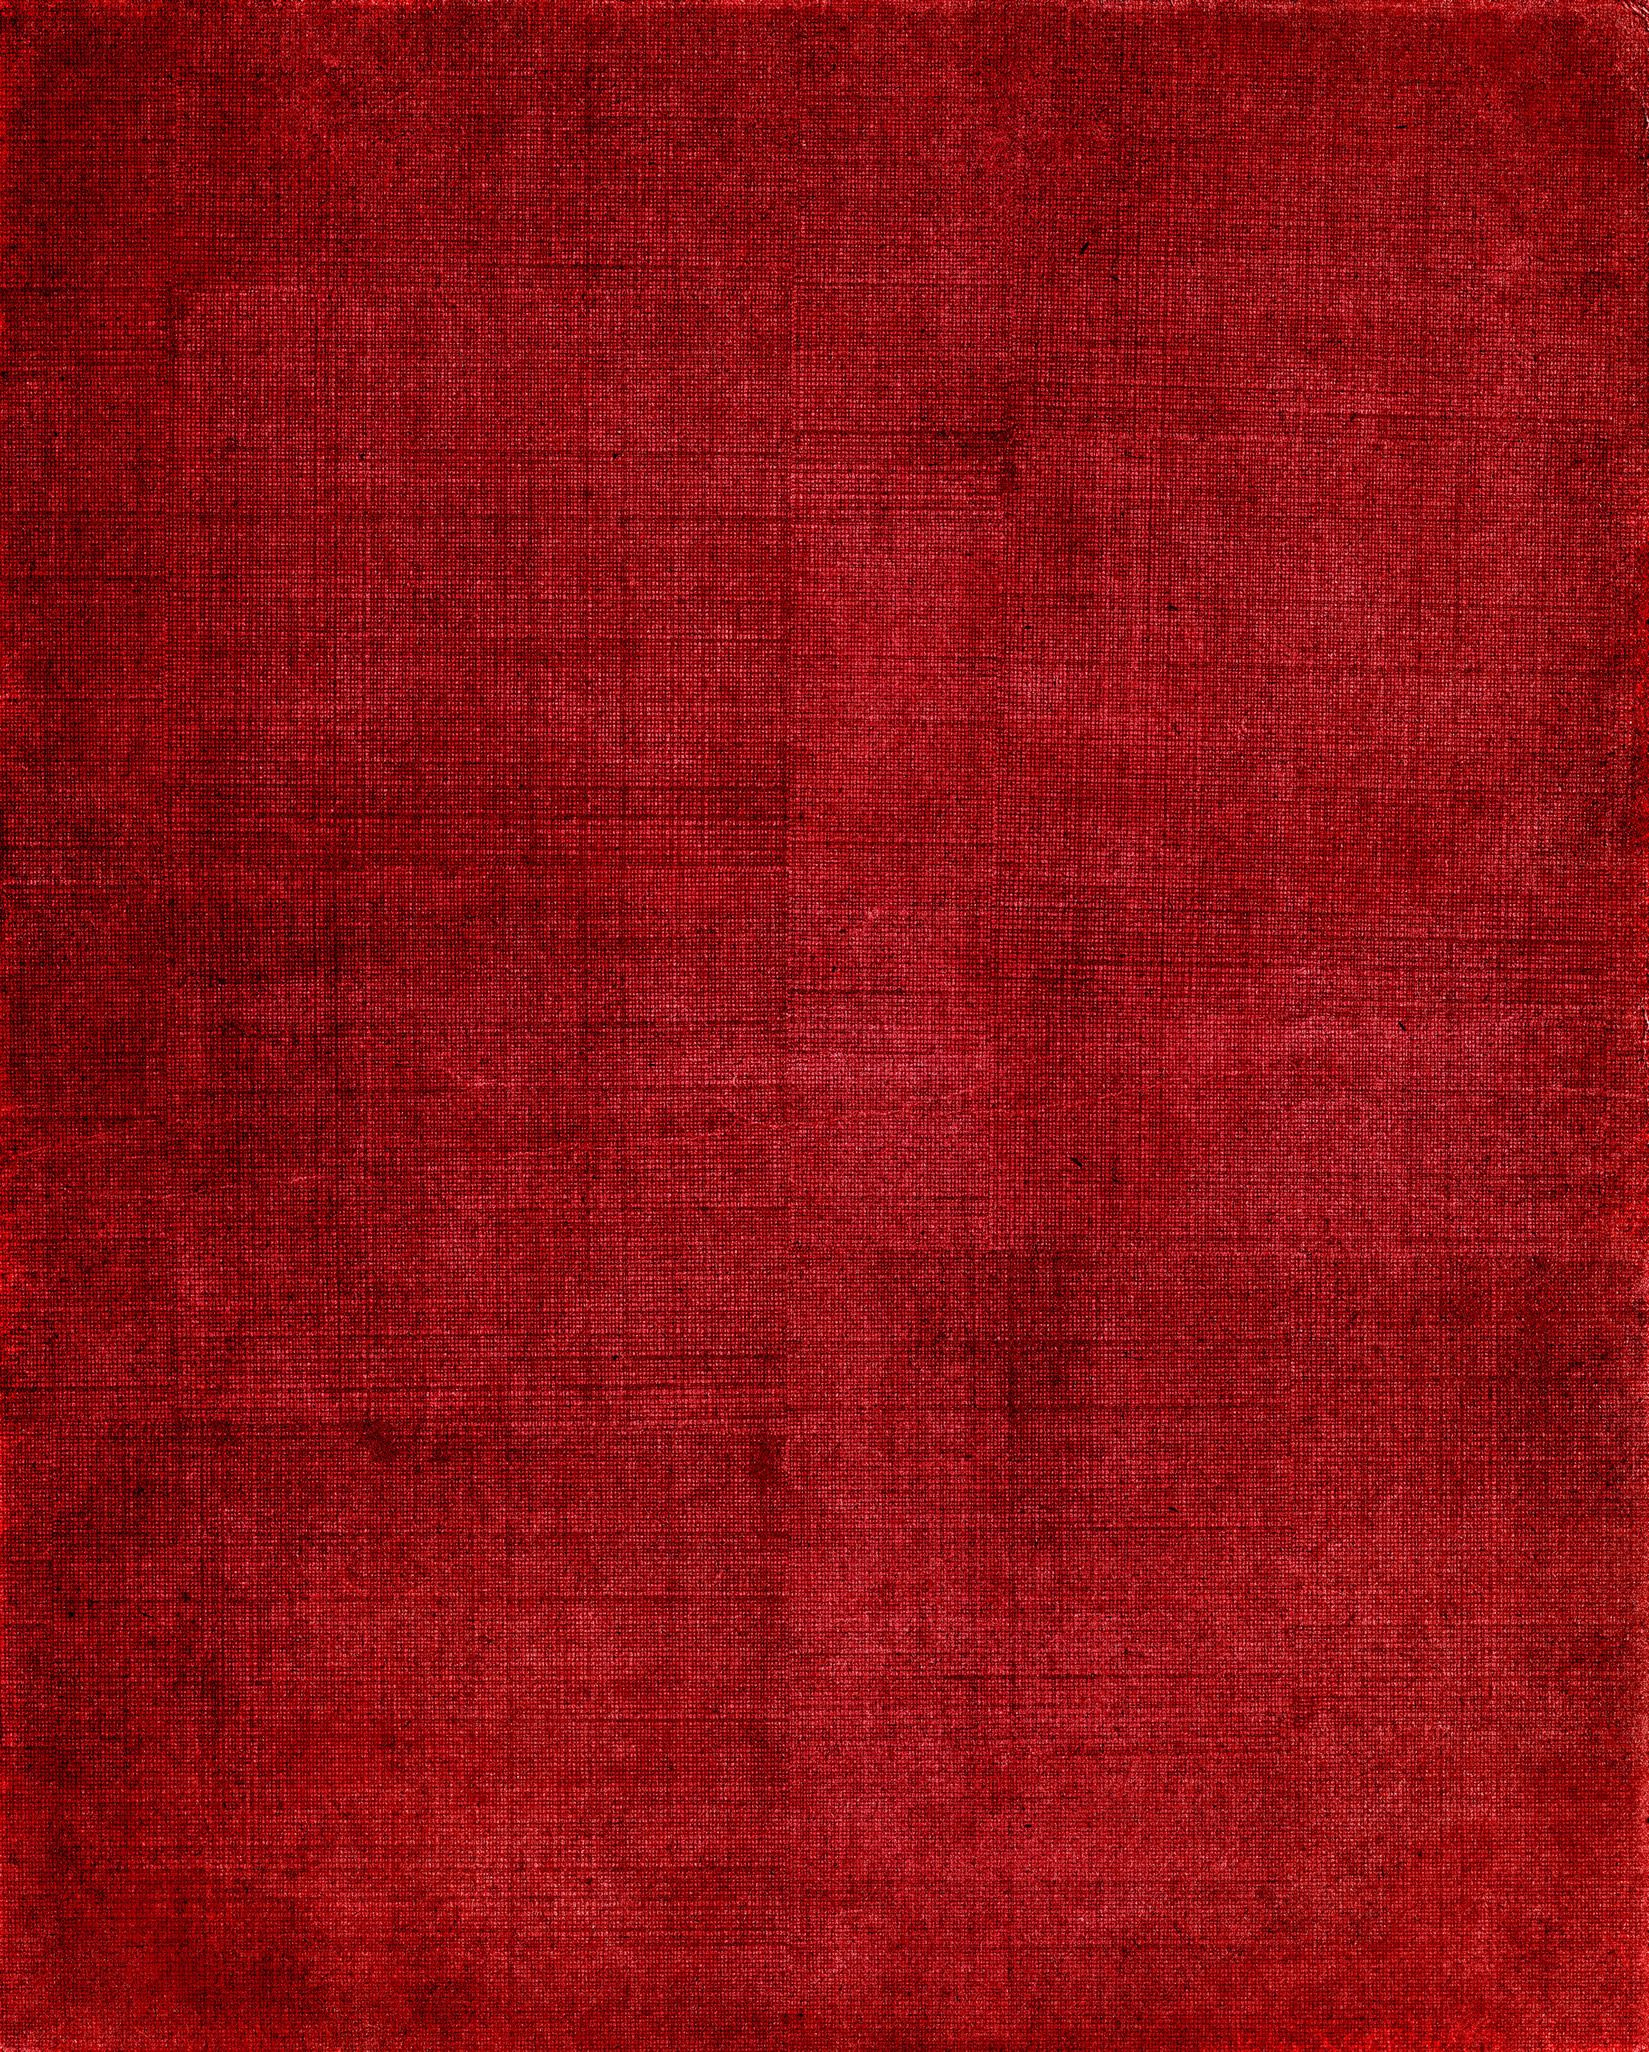 red textured background hd - photo #39